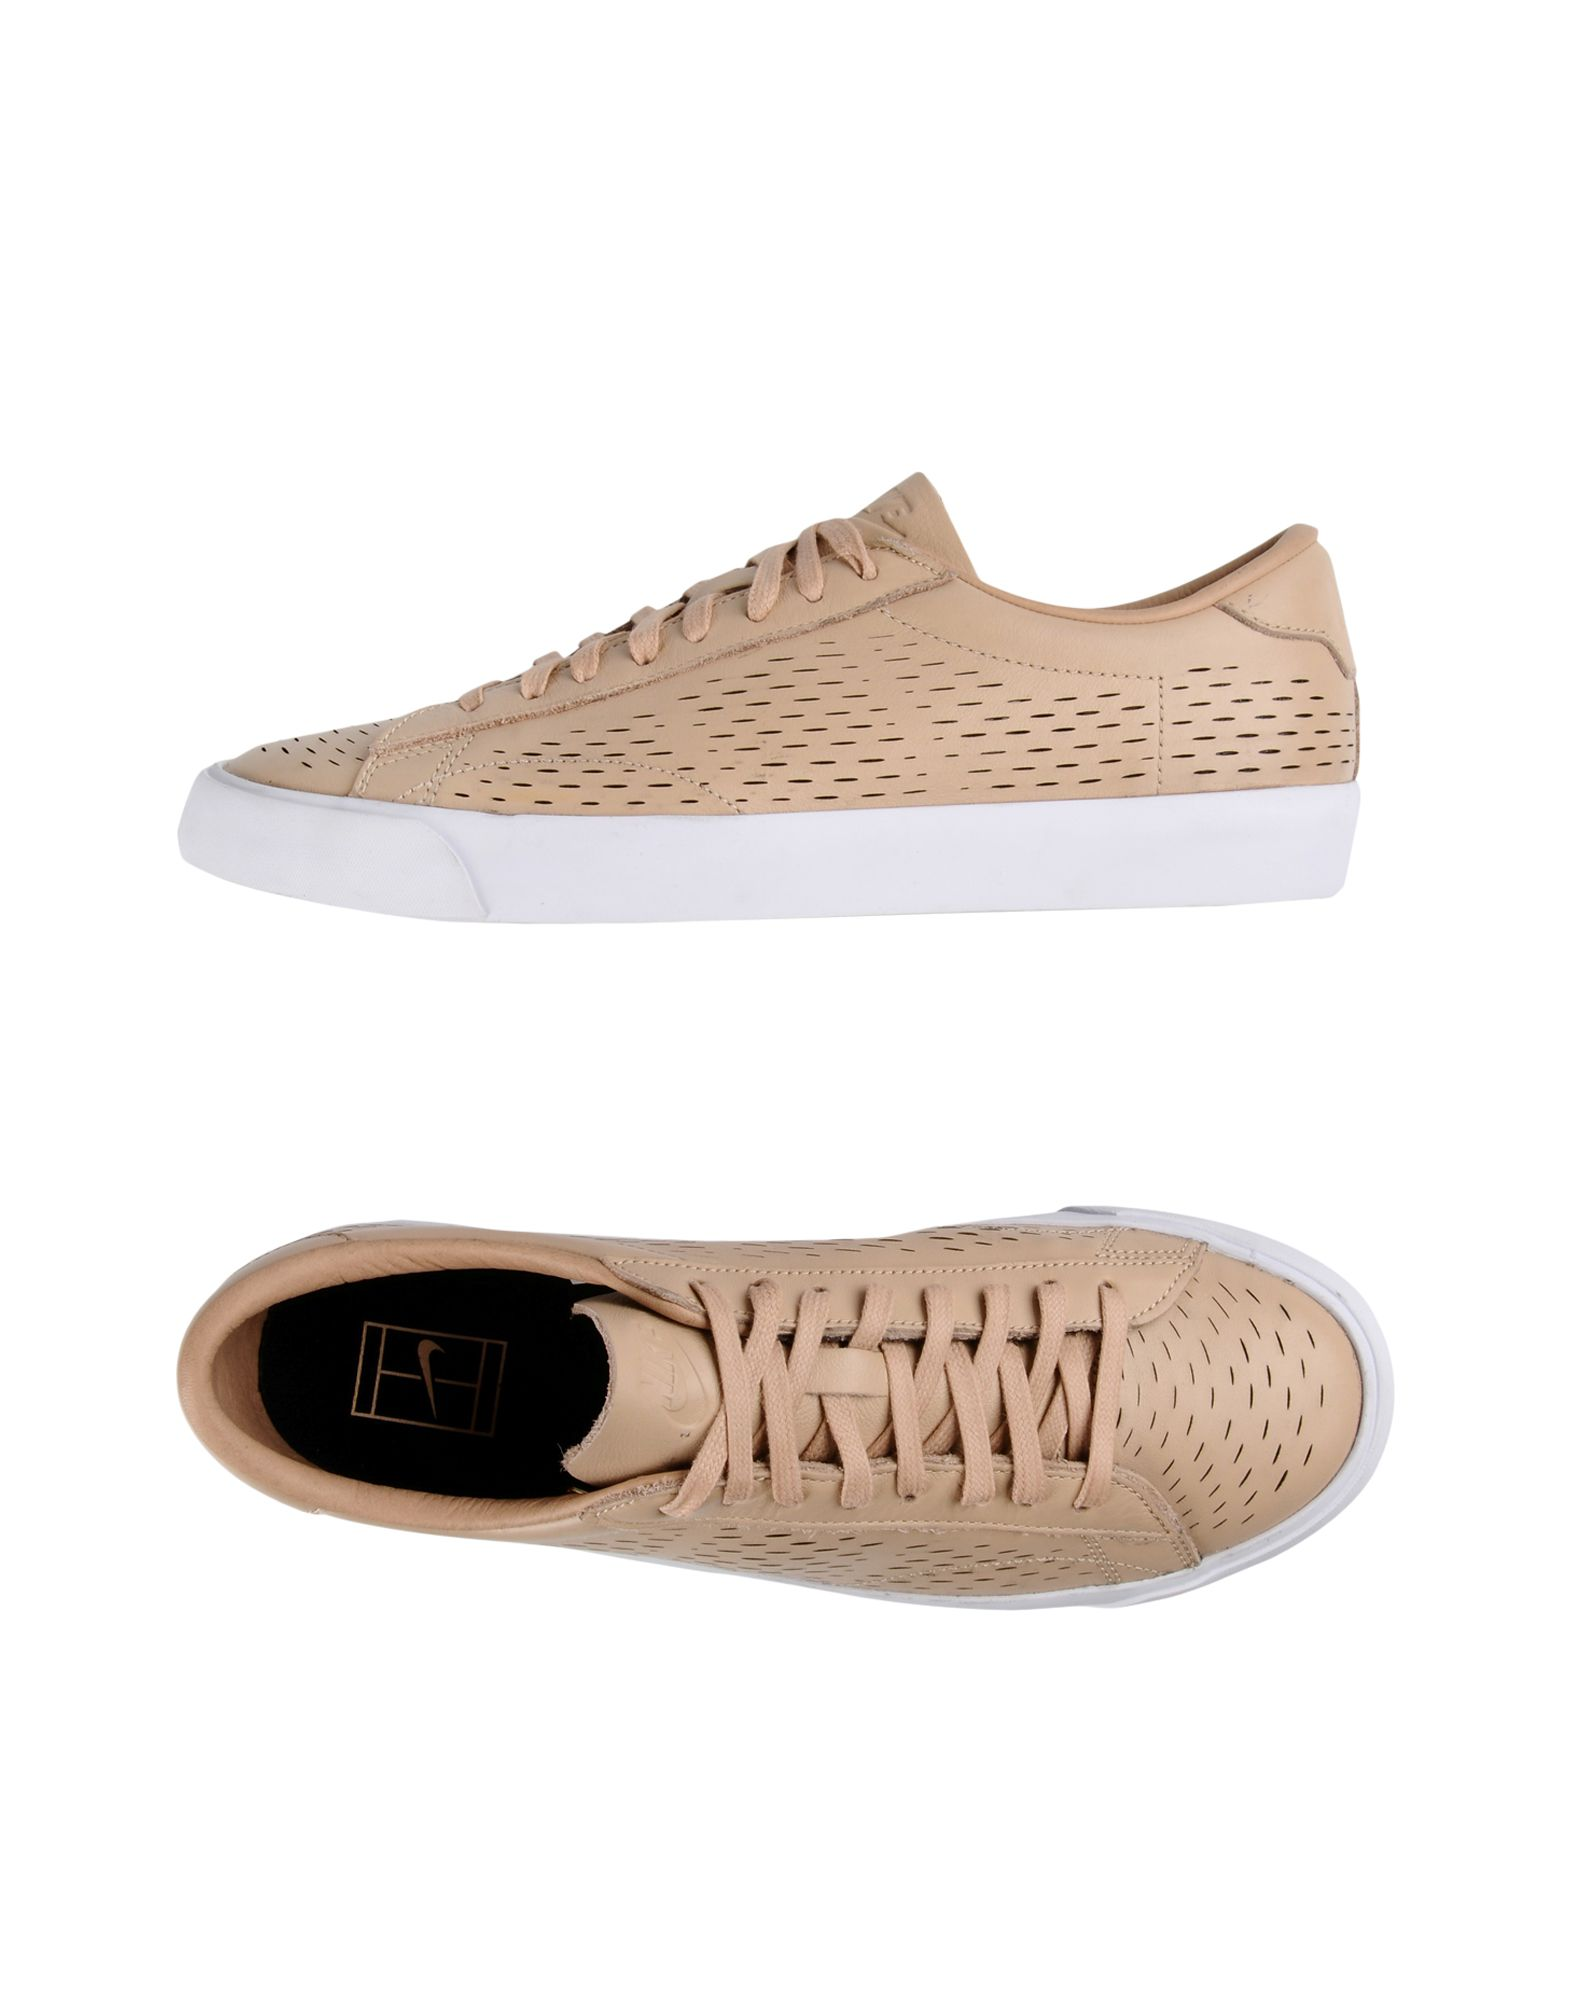 Sneakers Nike Tennis Classic Ac Ht Sneakers Laser - Homme - Sneakers Ht Nike  Sable Confortable et belle bd61c1